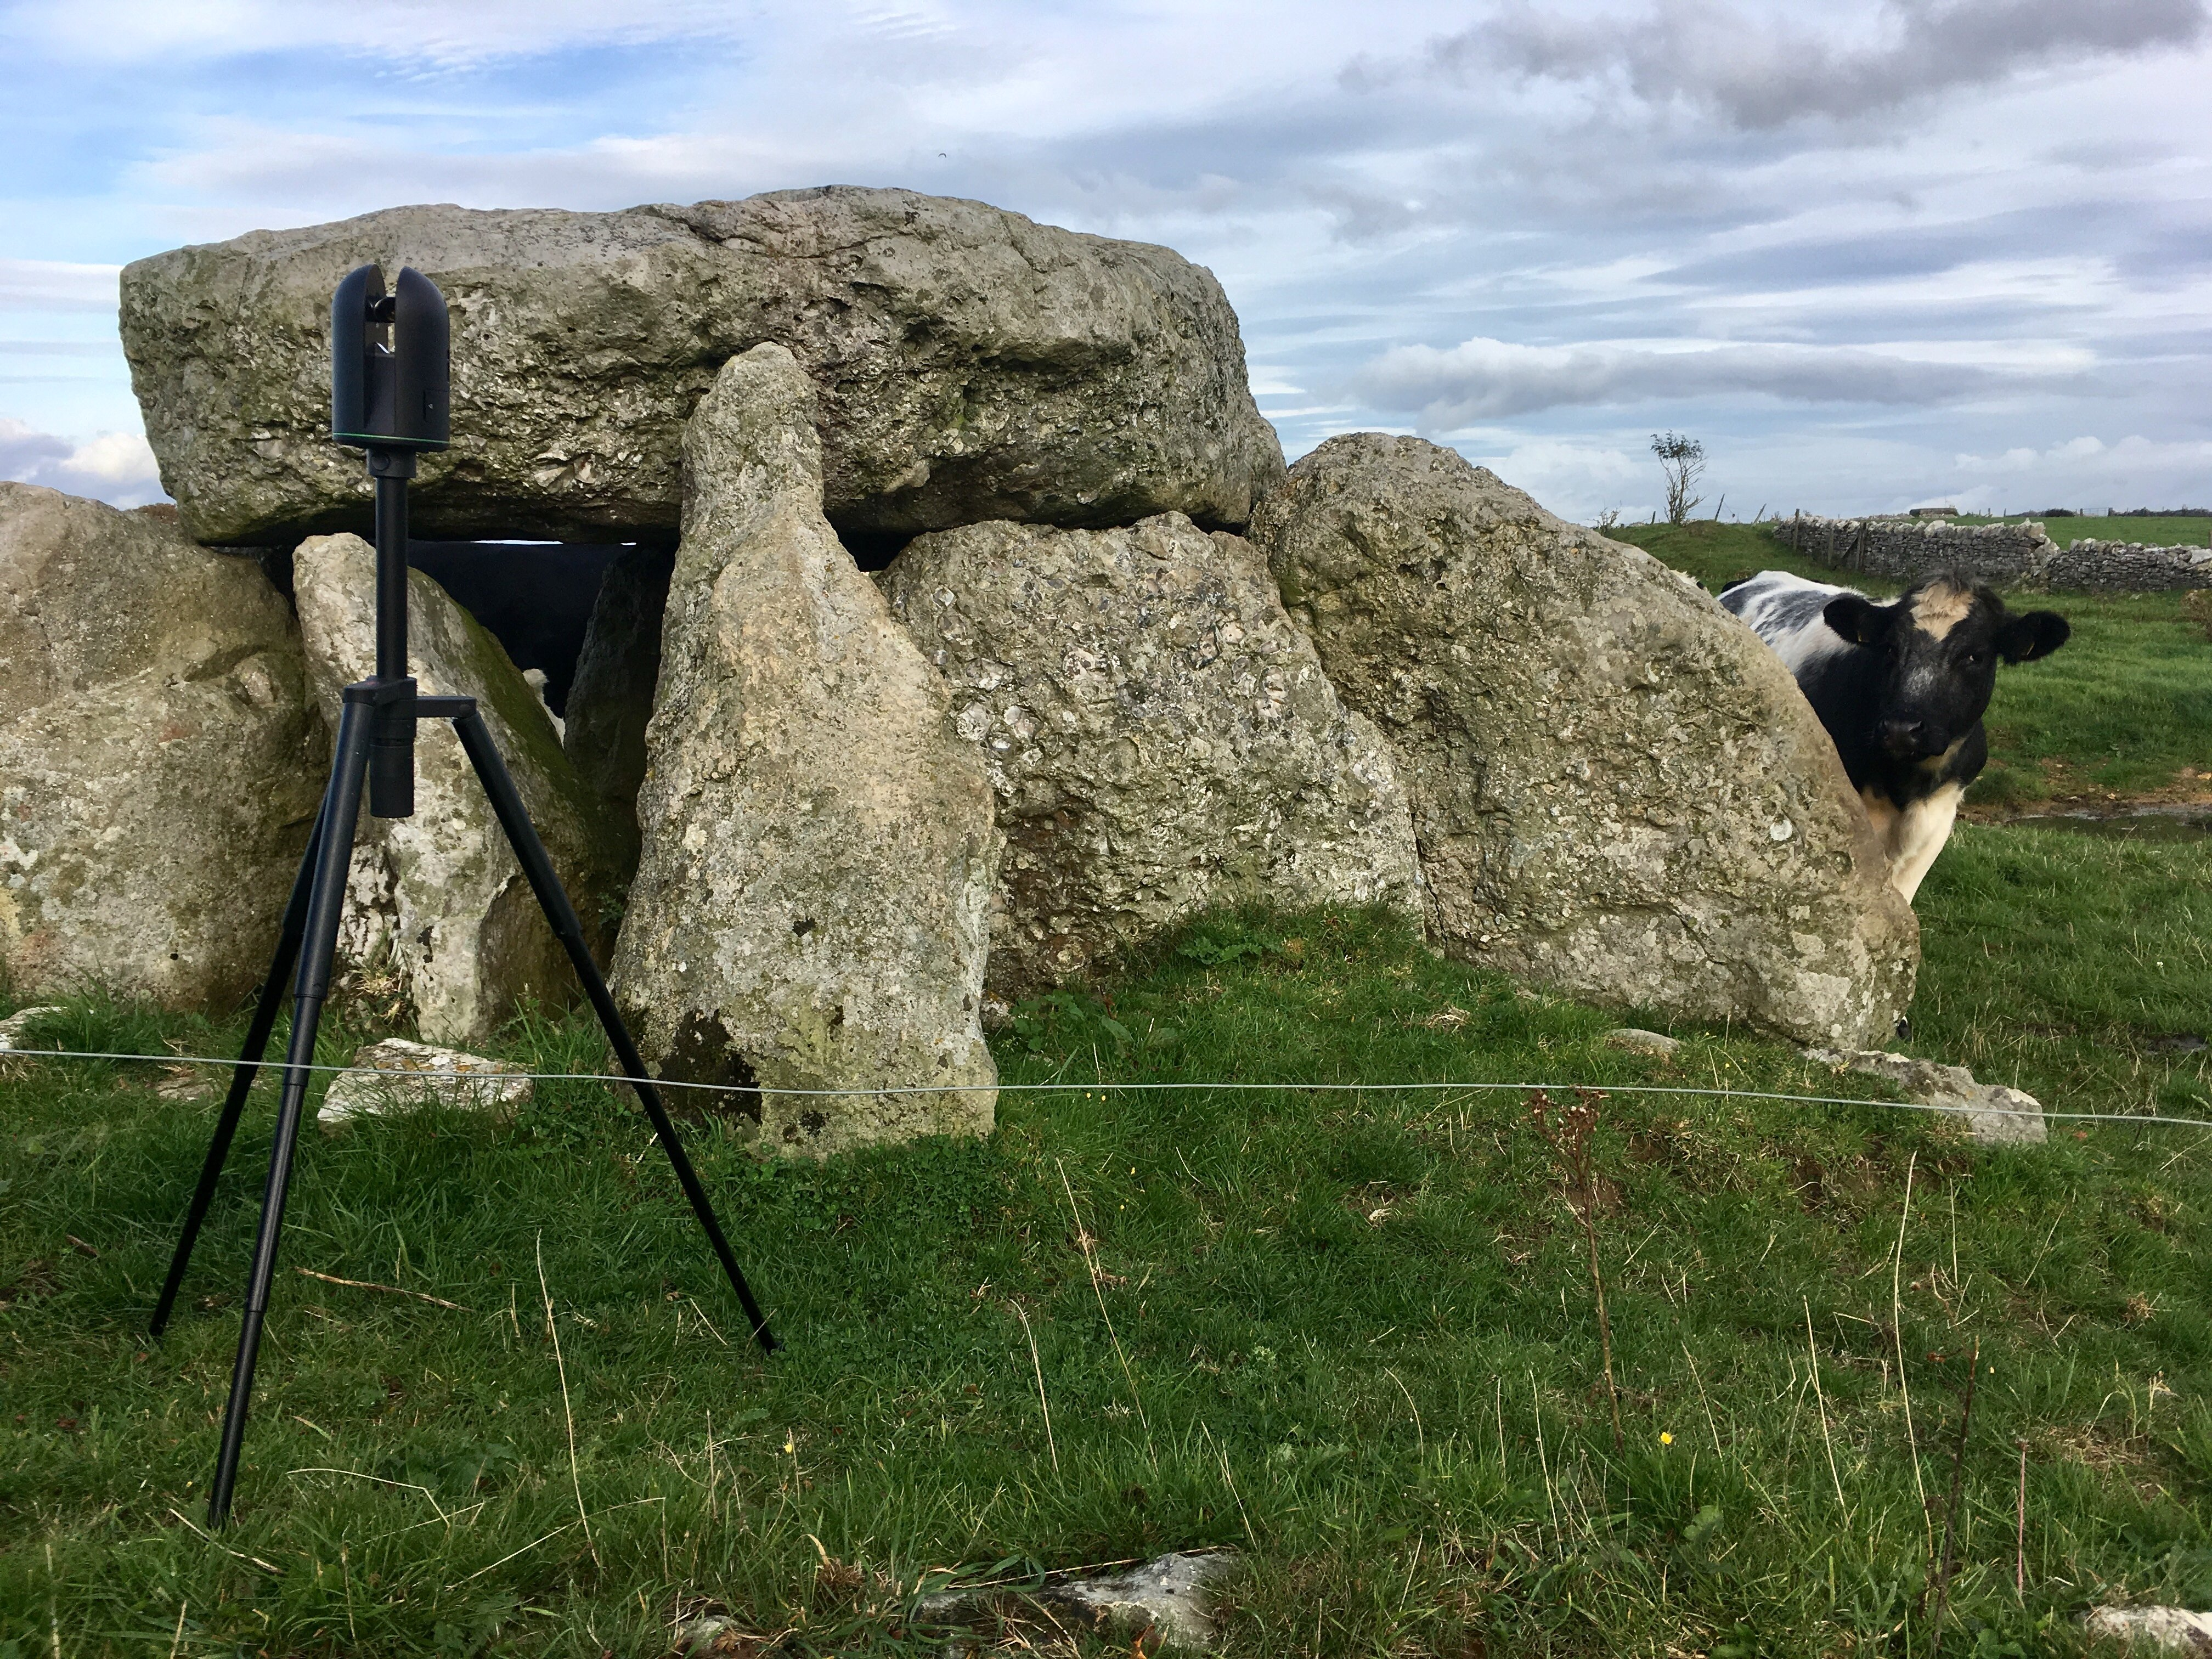 Leica BLK360 in field with a cow